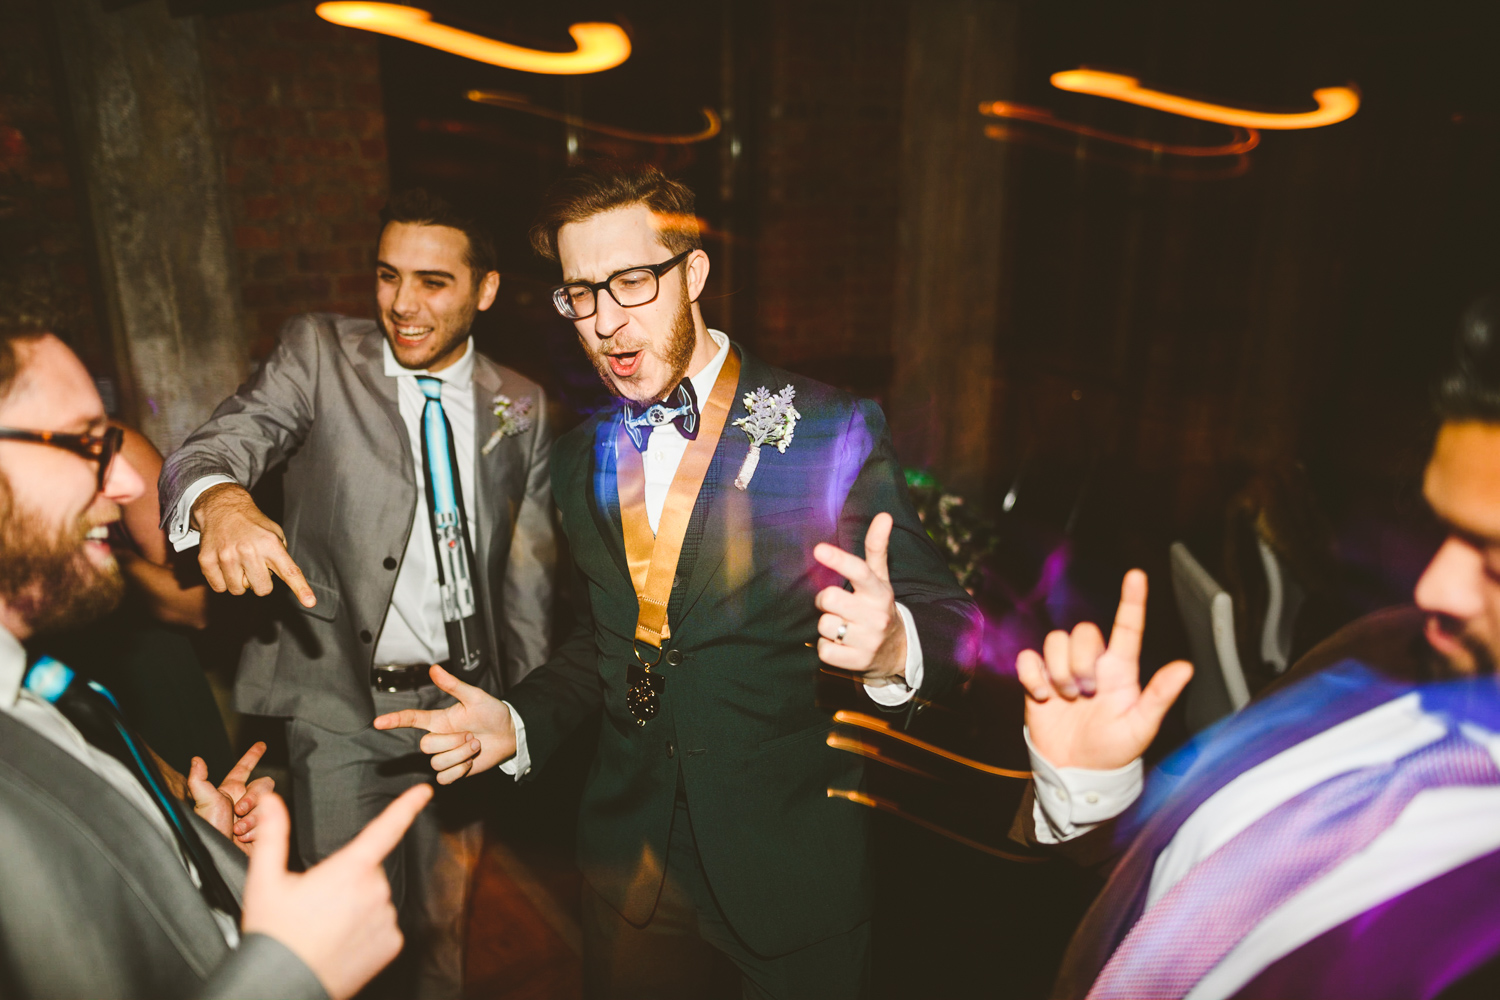 034 - groom dancing during star wars themed wedding.jpg